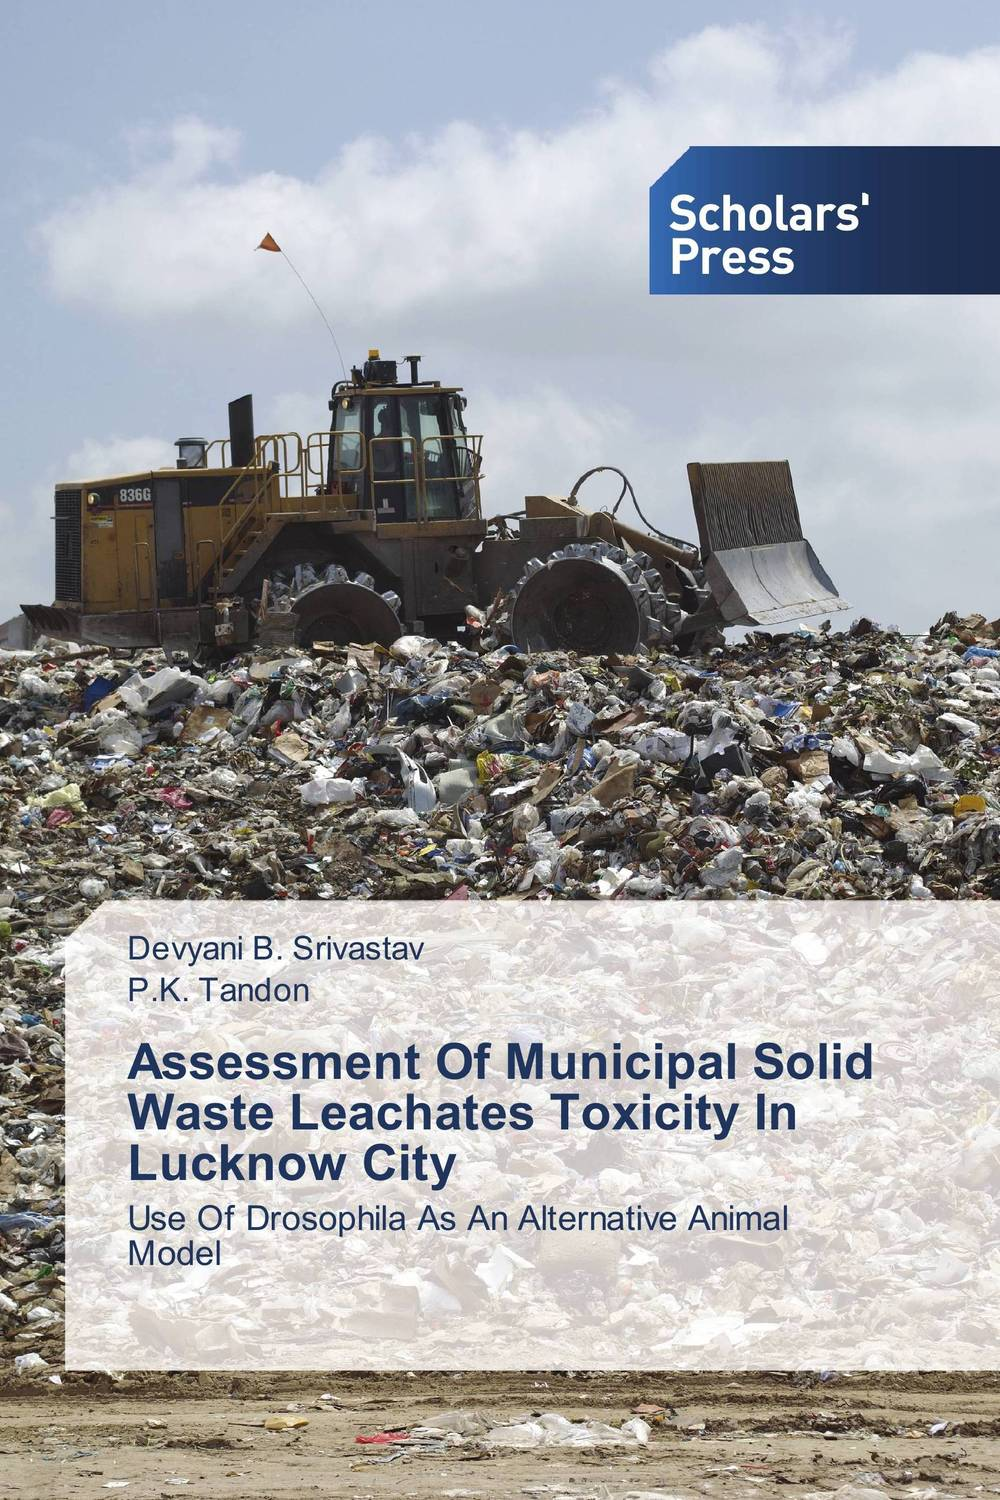 Assessment Of Municipal Solid Waste Leachates Toxicity In Lucknow City chemical studies on toxic effects of cadmium